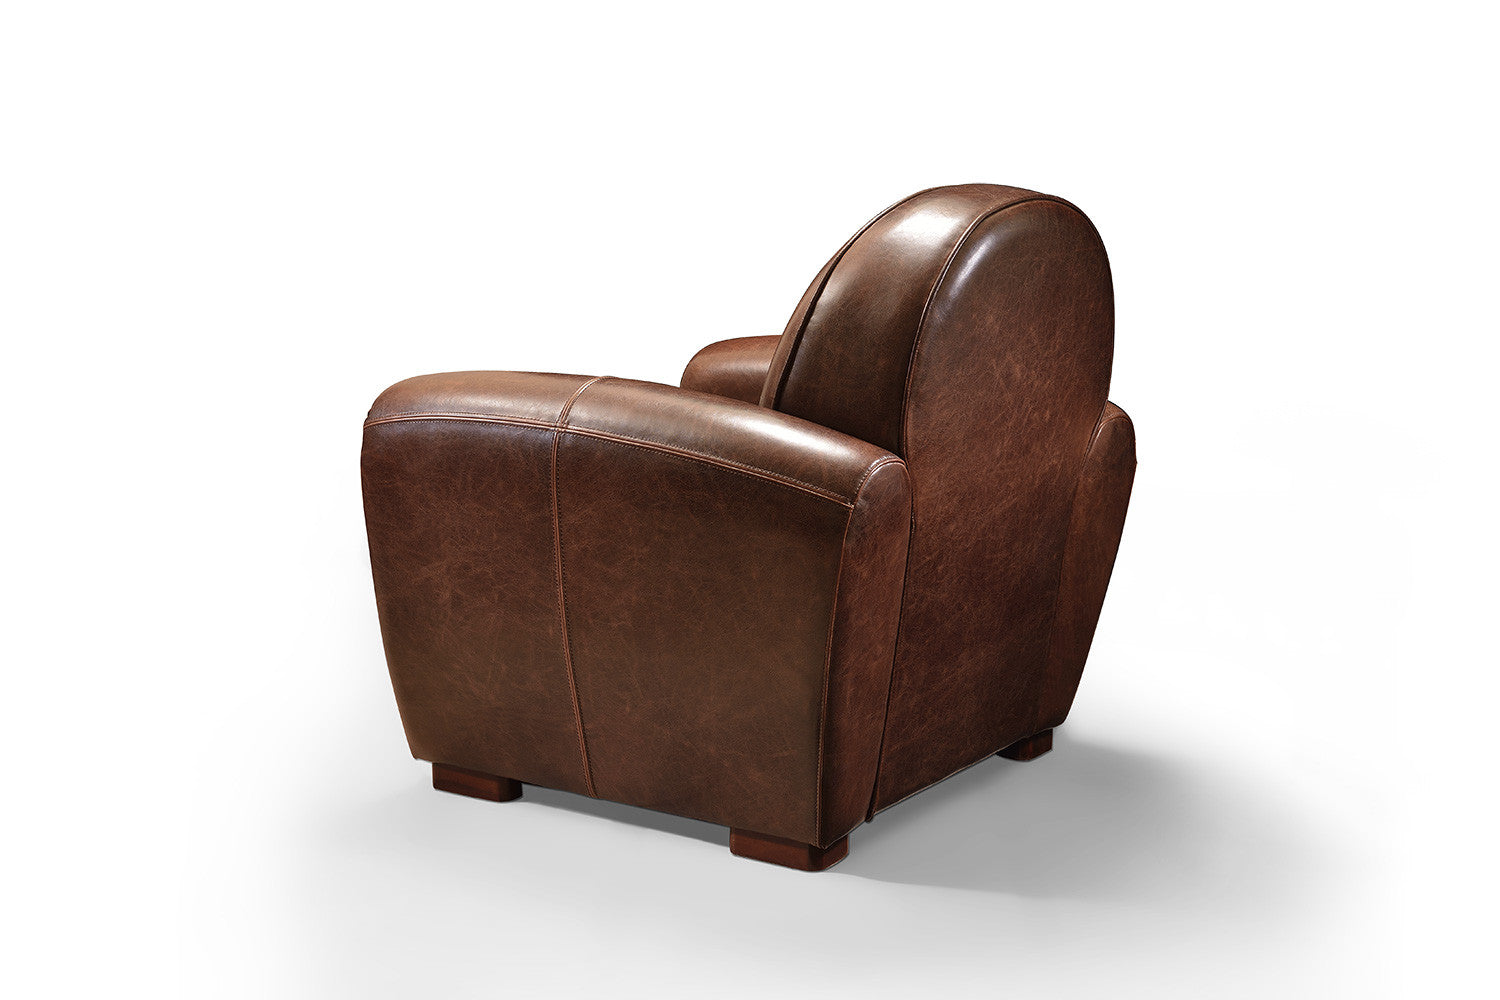 le fauteuil club 1930 ancien clous rose moore. Black Bedroom Furniture Sets. Home Design Ideas